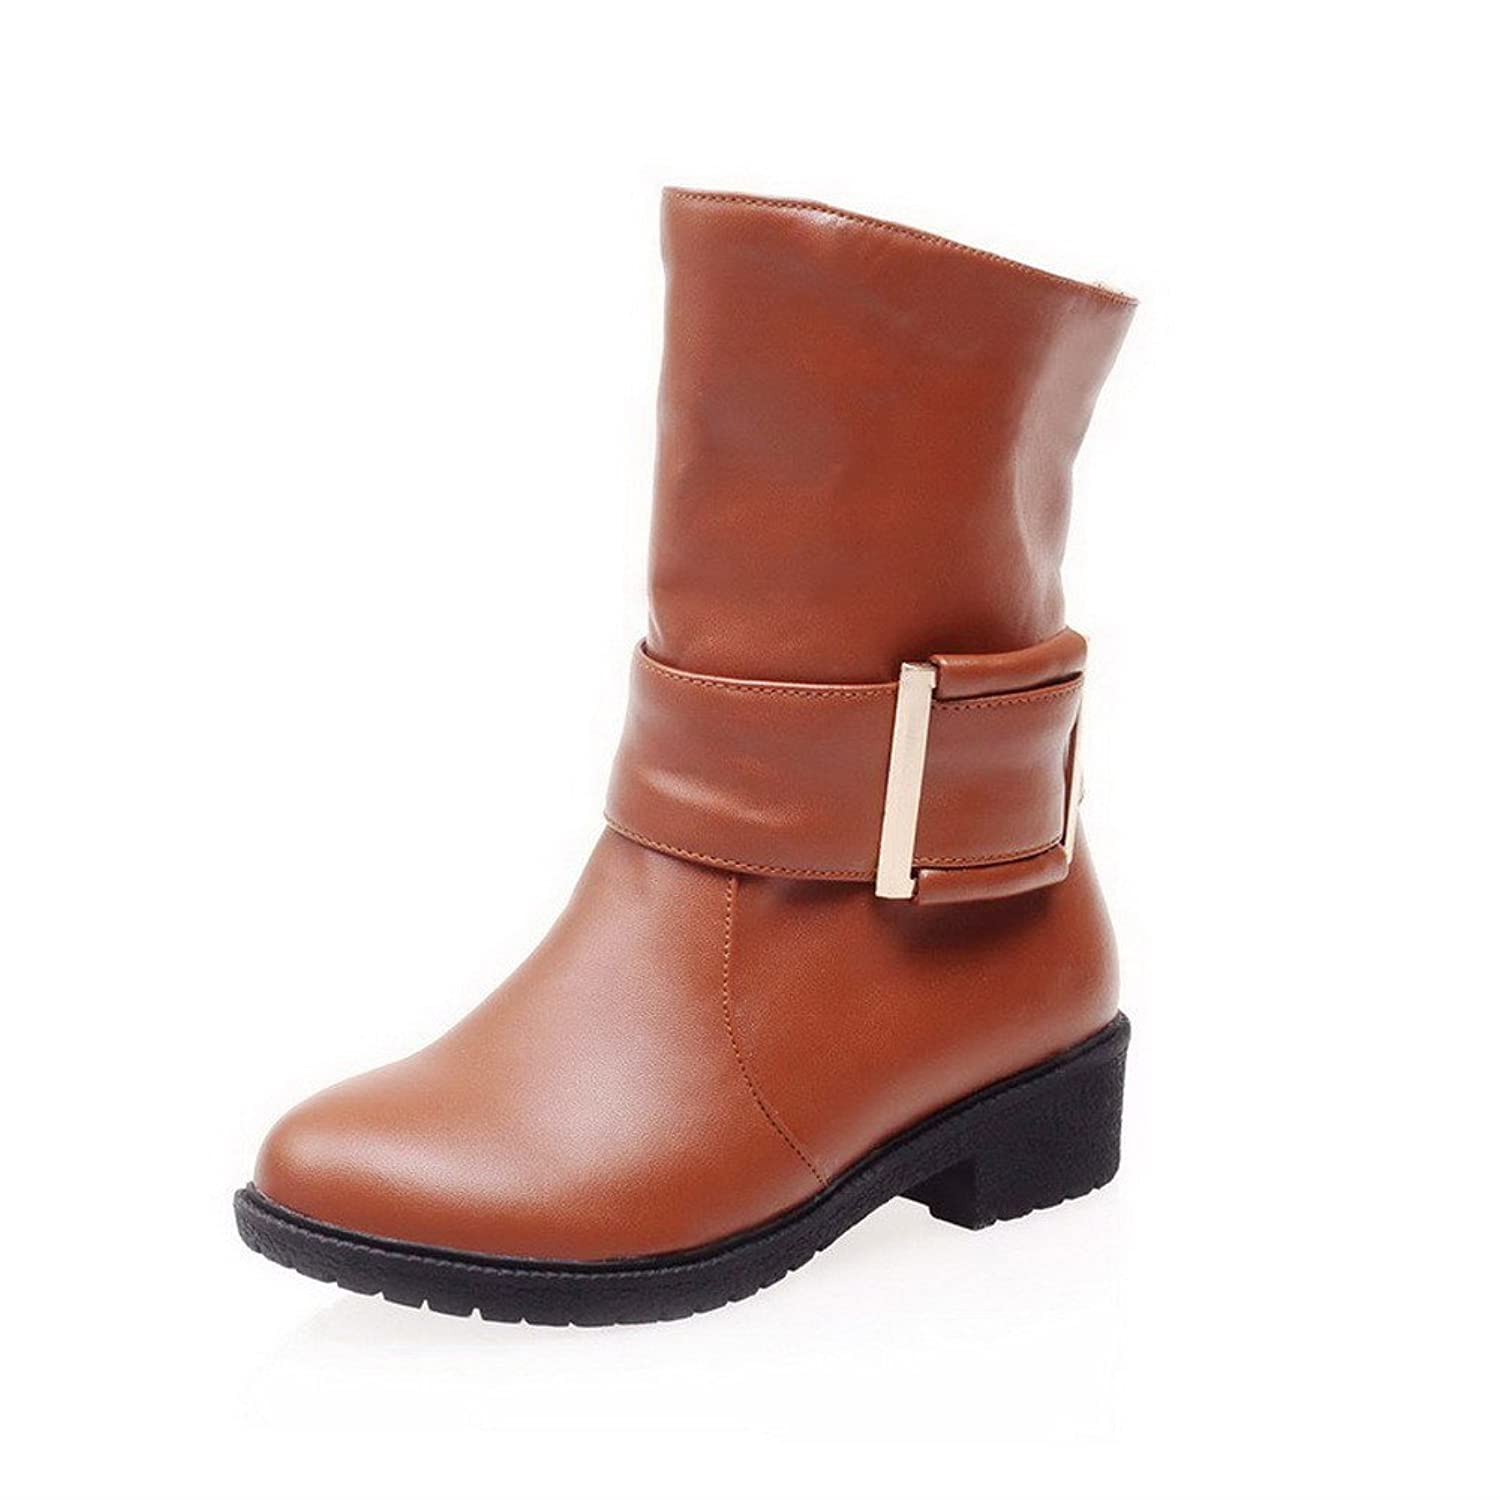 VogueZone009 Women's Solid Low-Heels Round Closed Toe PU Pull-on Boots